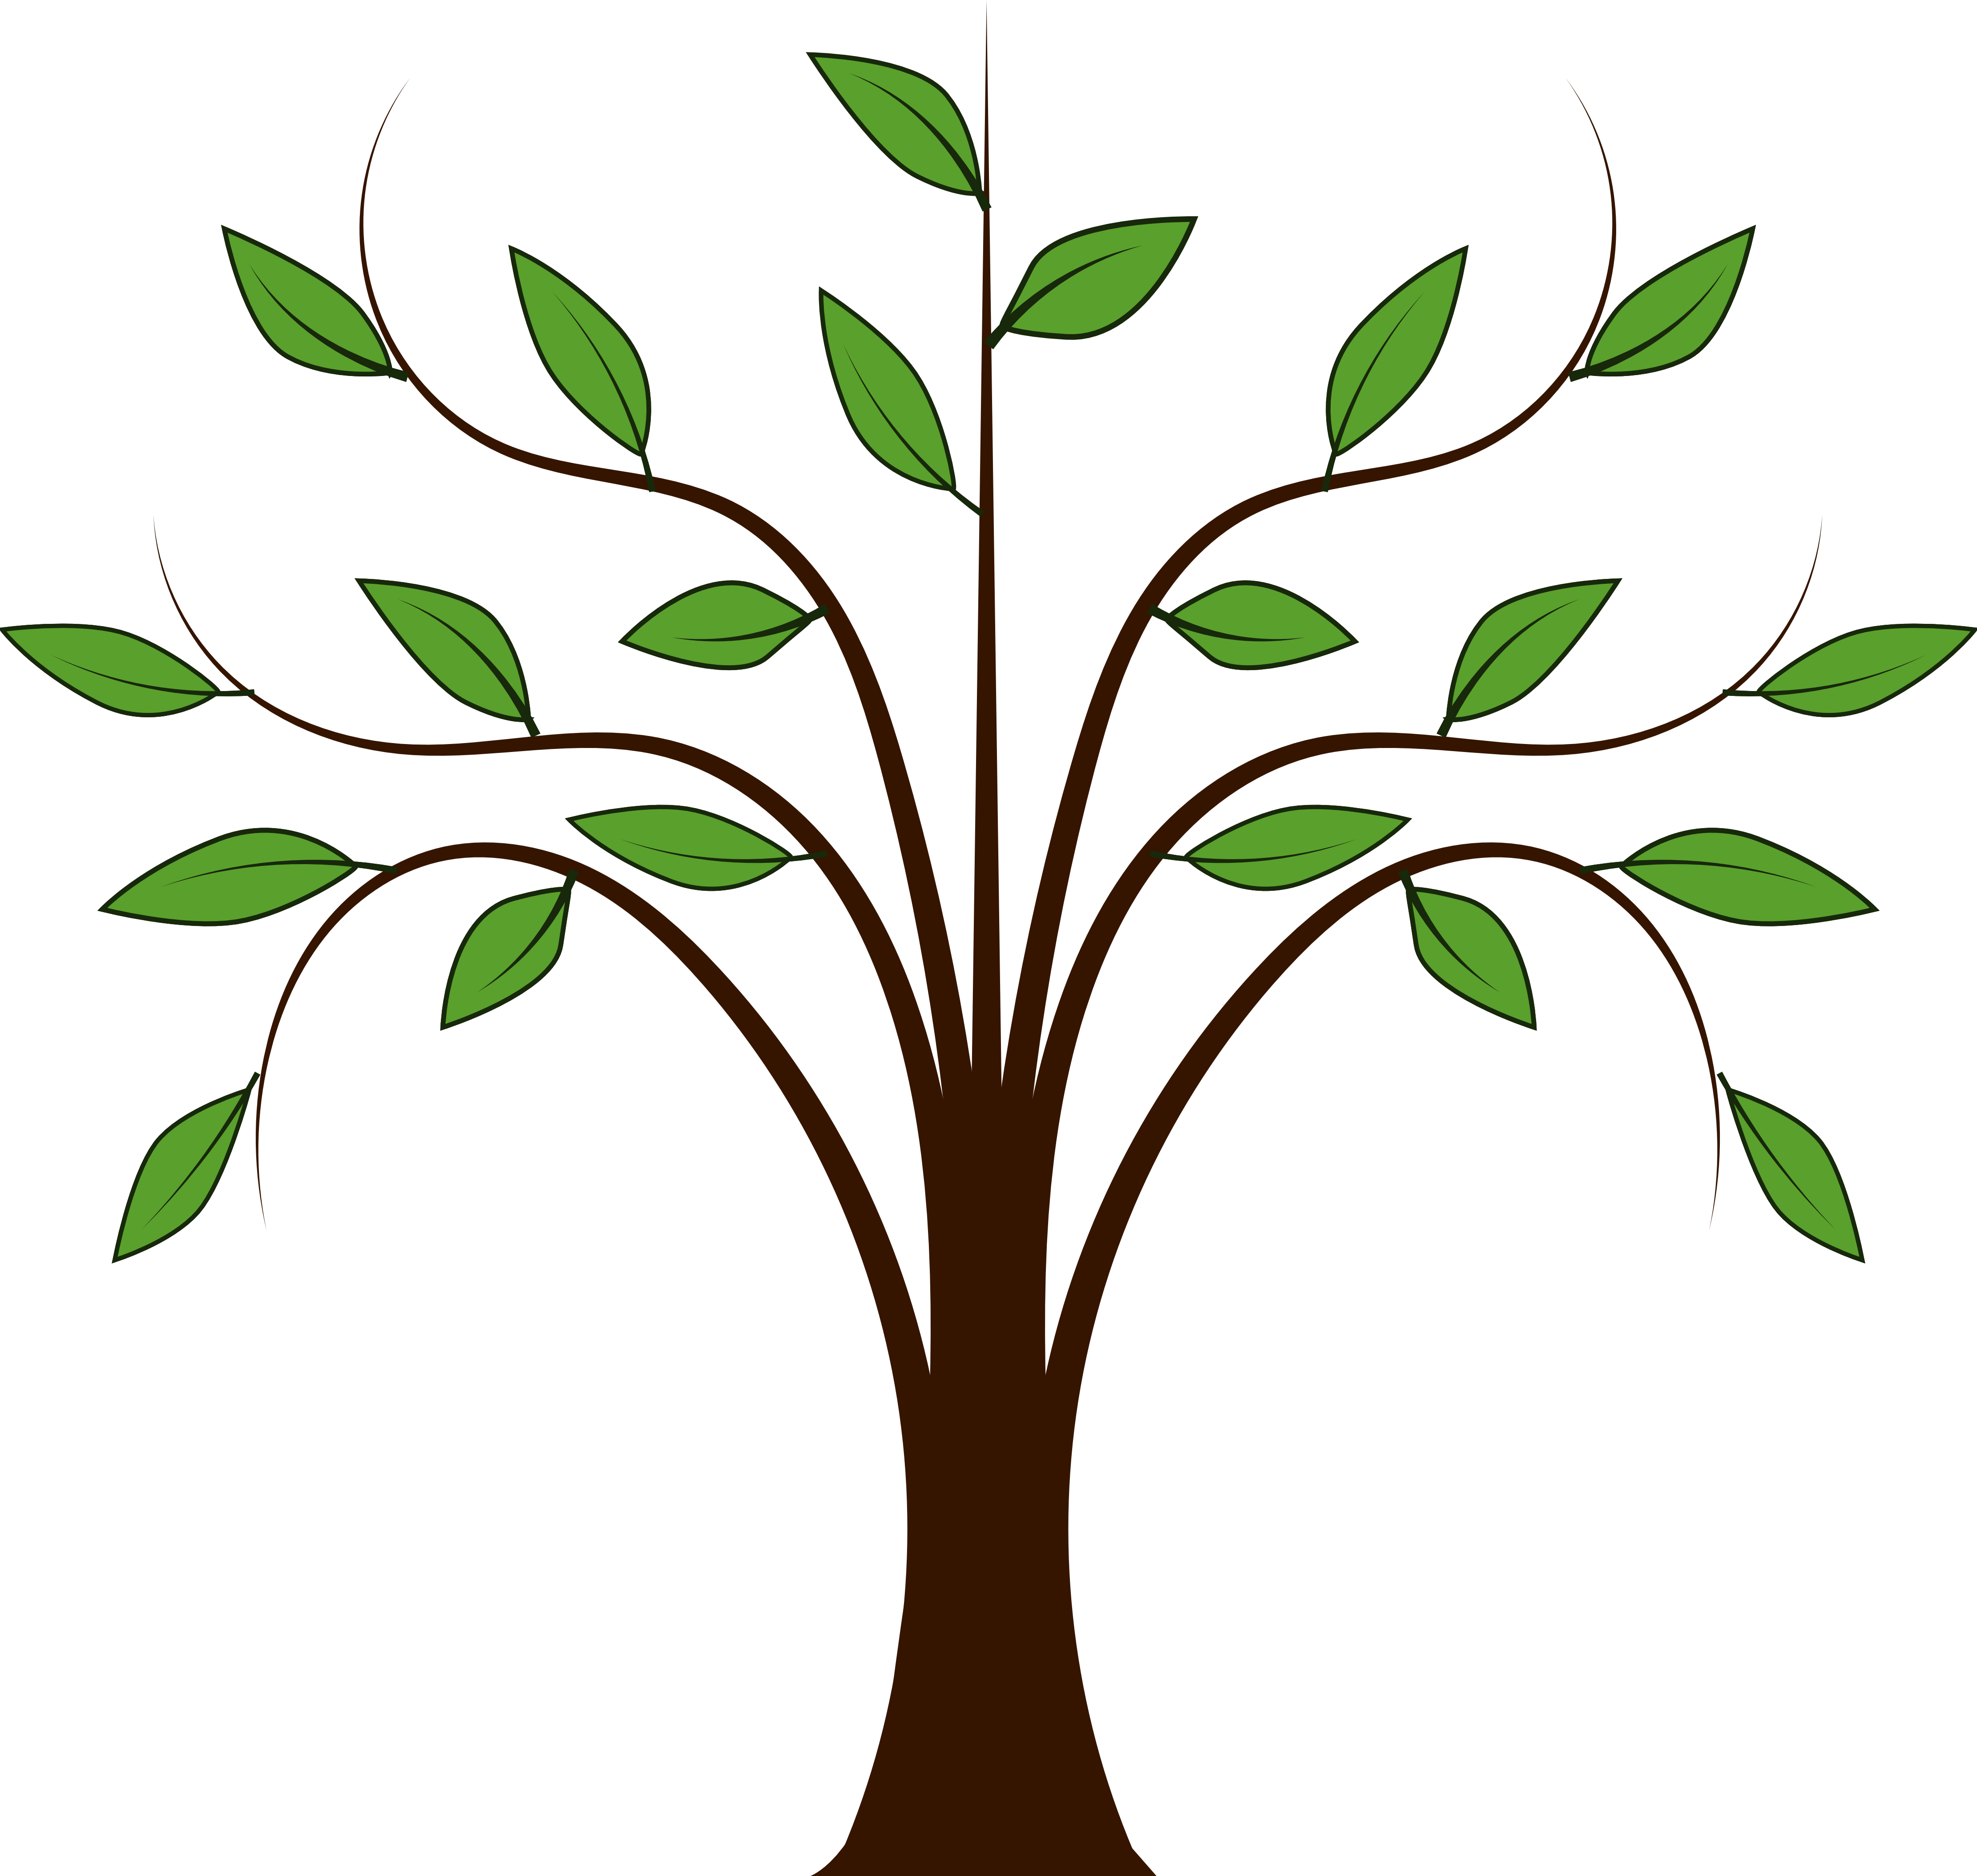 african tree clipart at getdrawings com free for personal use